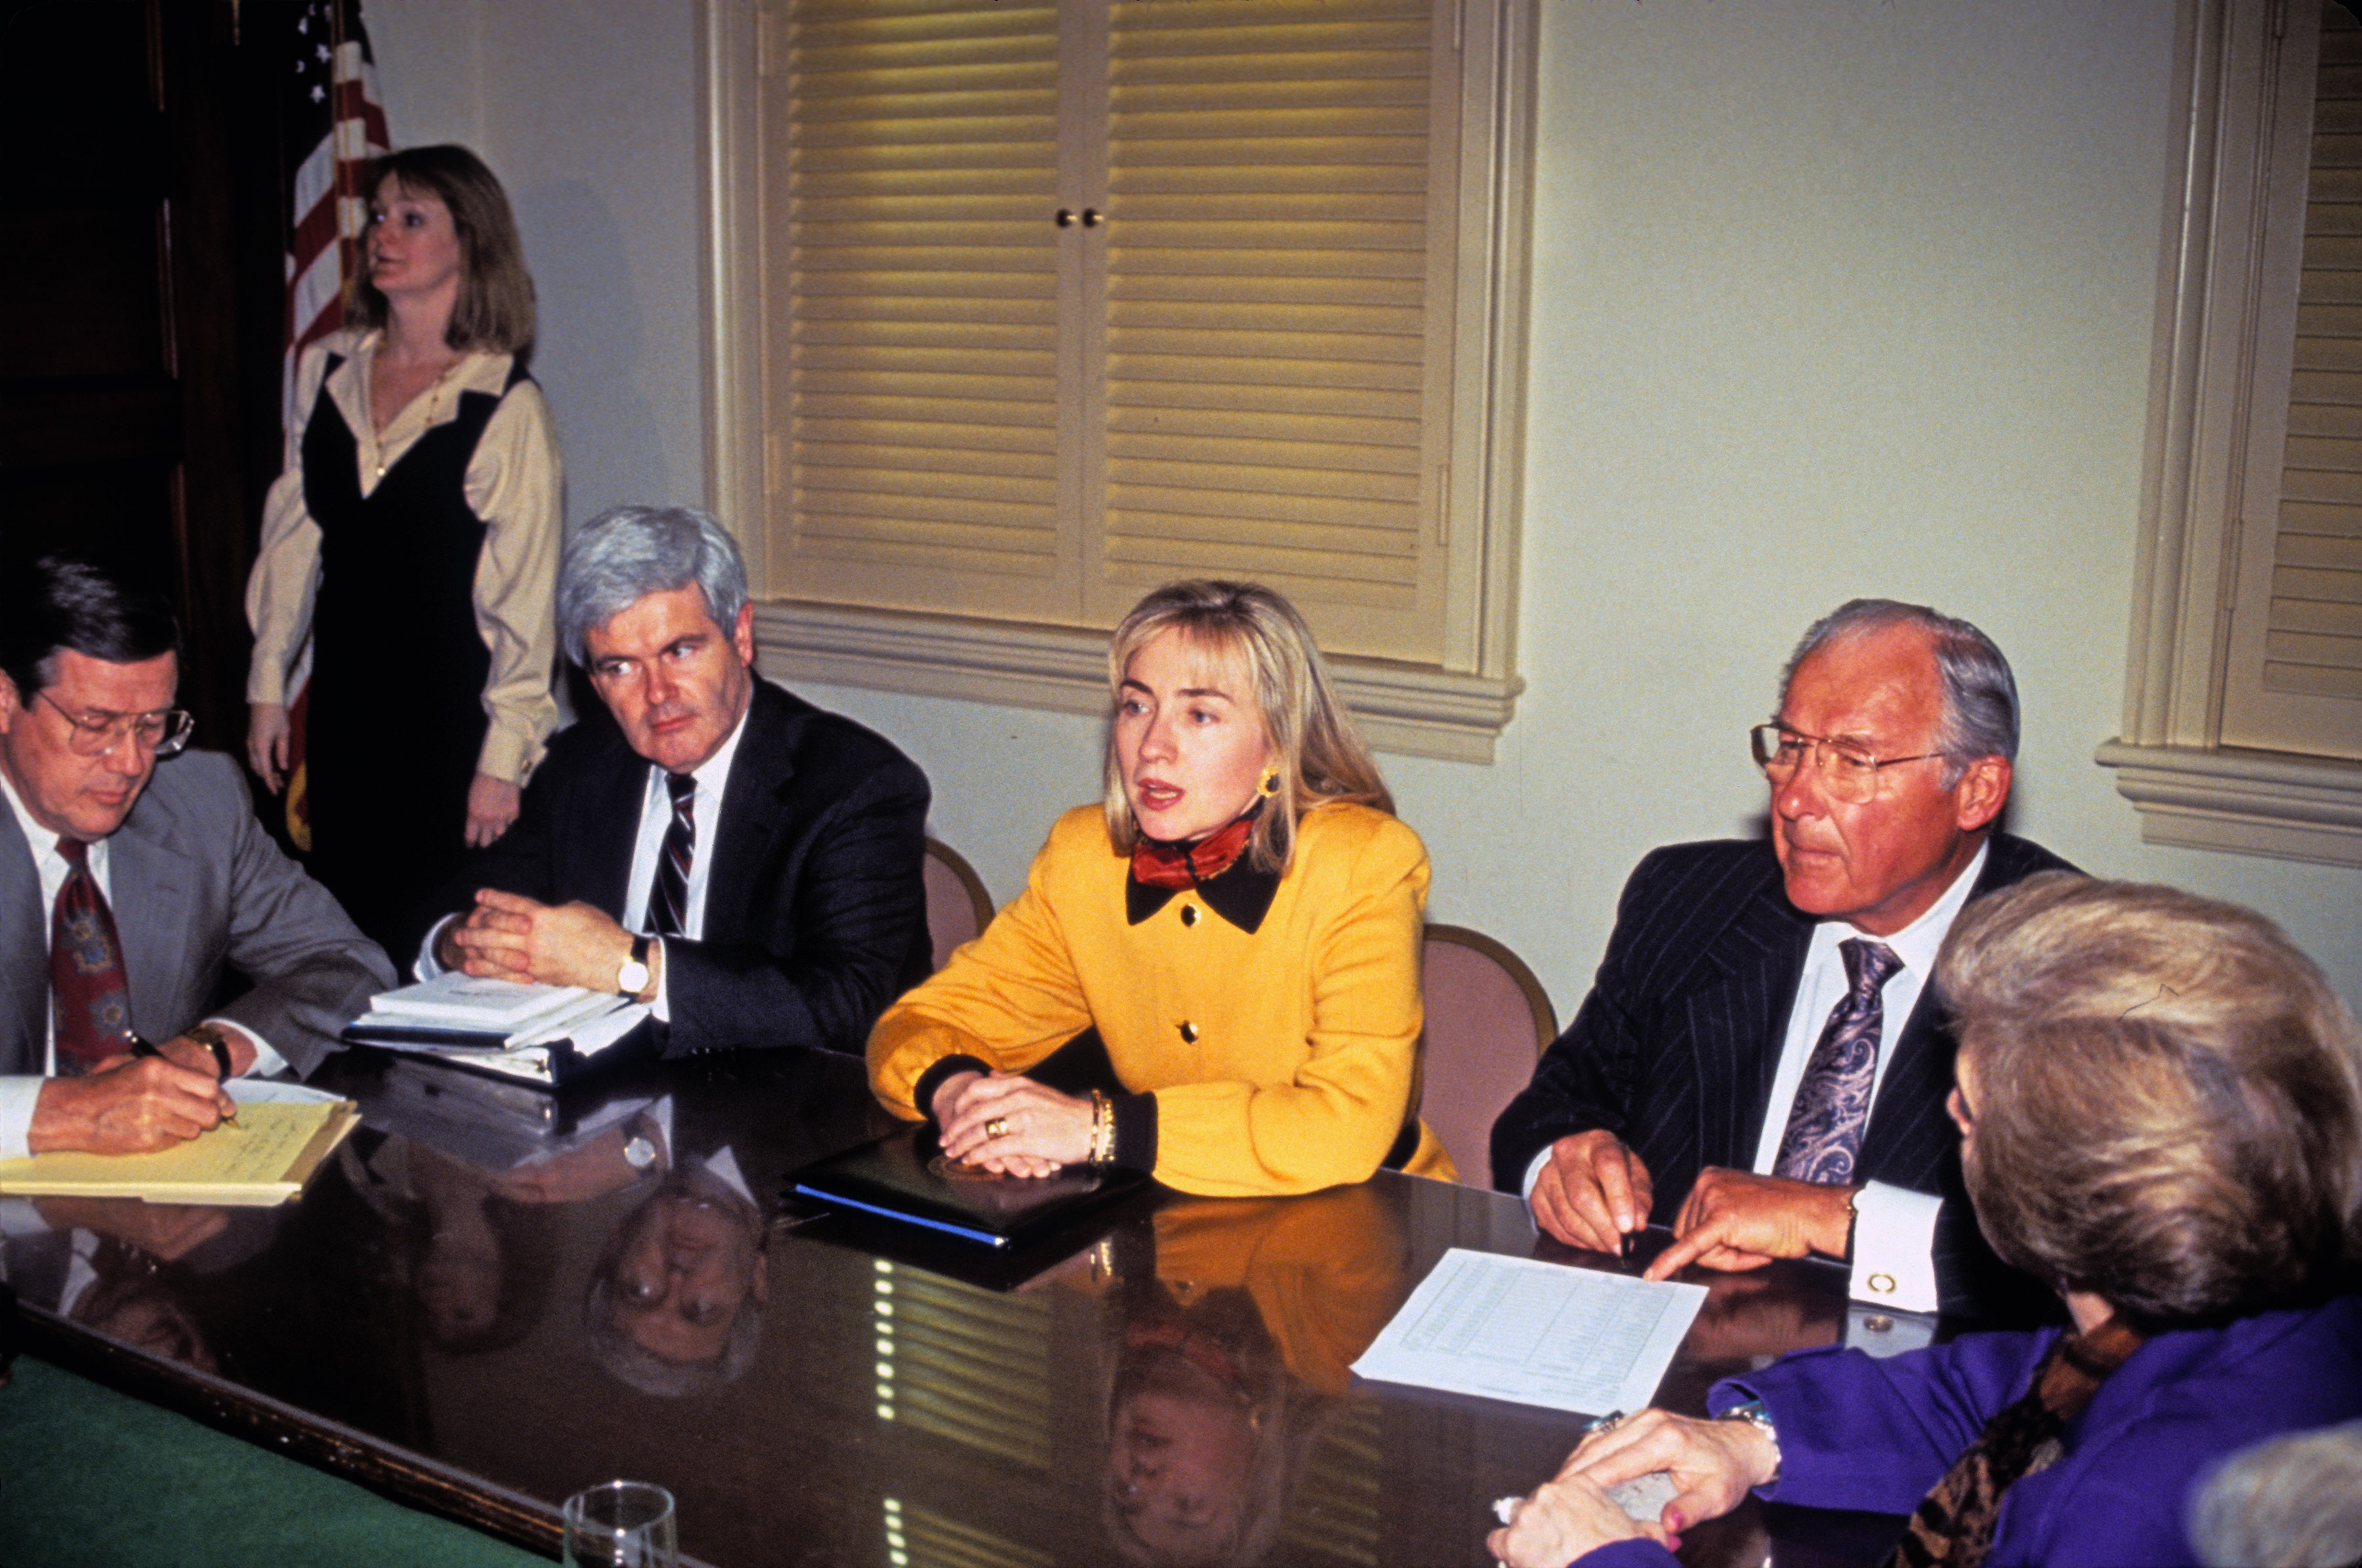 Clinton meets with United States House Minority Leader Robert H. Michel, right, and U.S. House Minority Whip Newt Gingrich, left, in the U.S. Capitol in Washington, D.C. on February 16, 1993. (Photo: Brad Markel/ZUMA Press/Newscom)